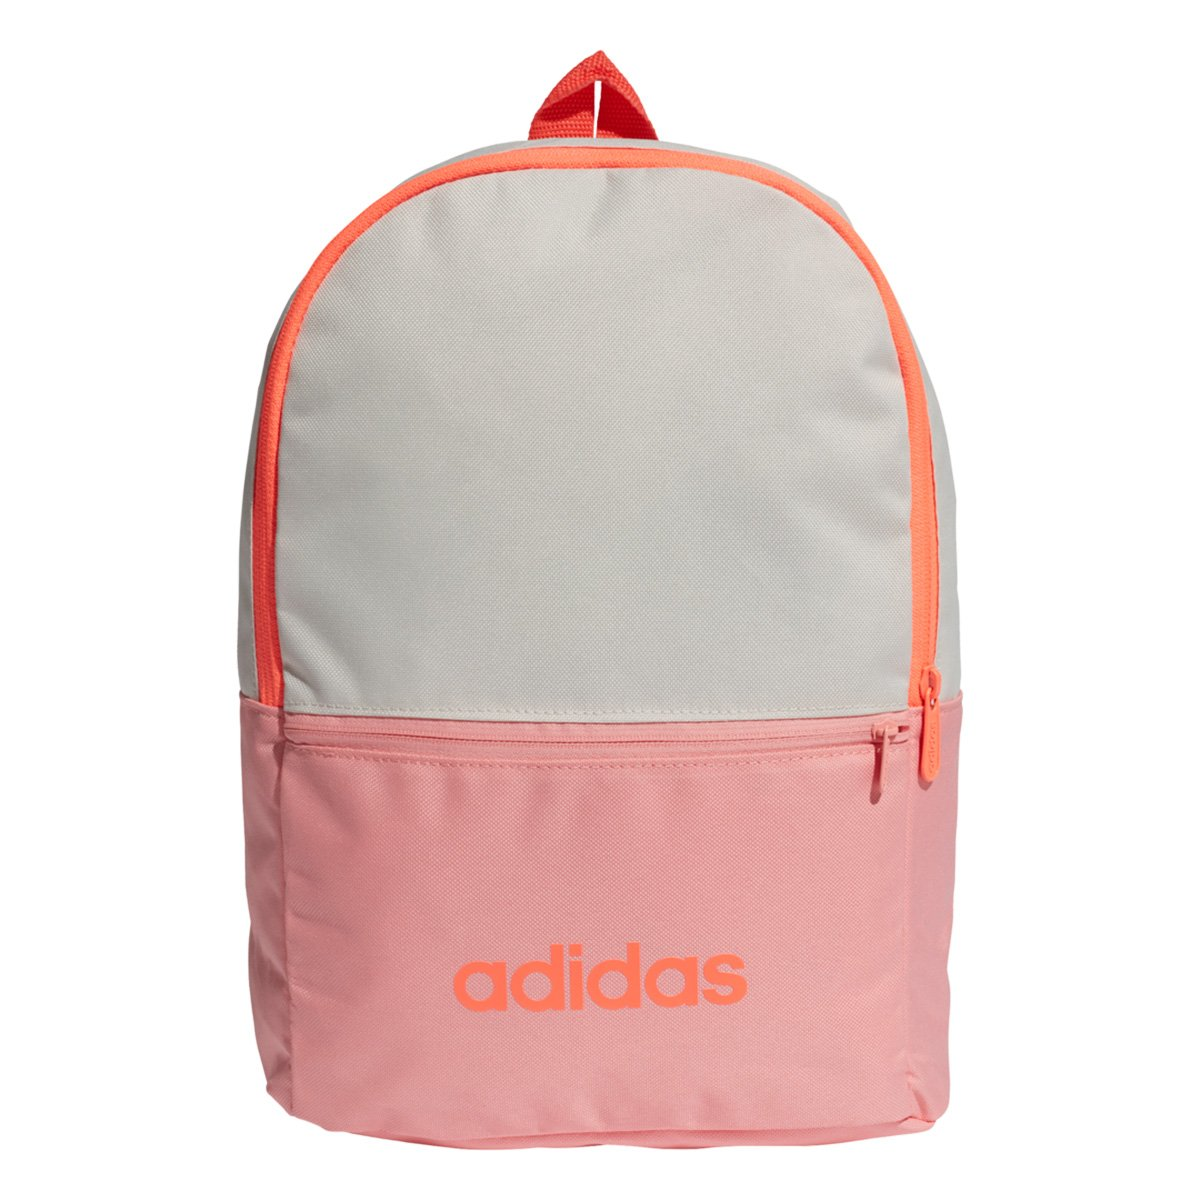 Mochila Pequena Tailored For Her Classic Rosa Adidas Adidas Brasil